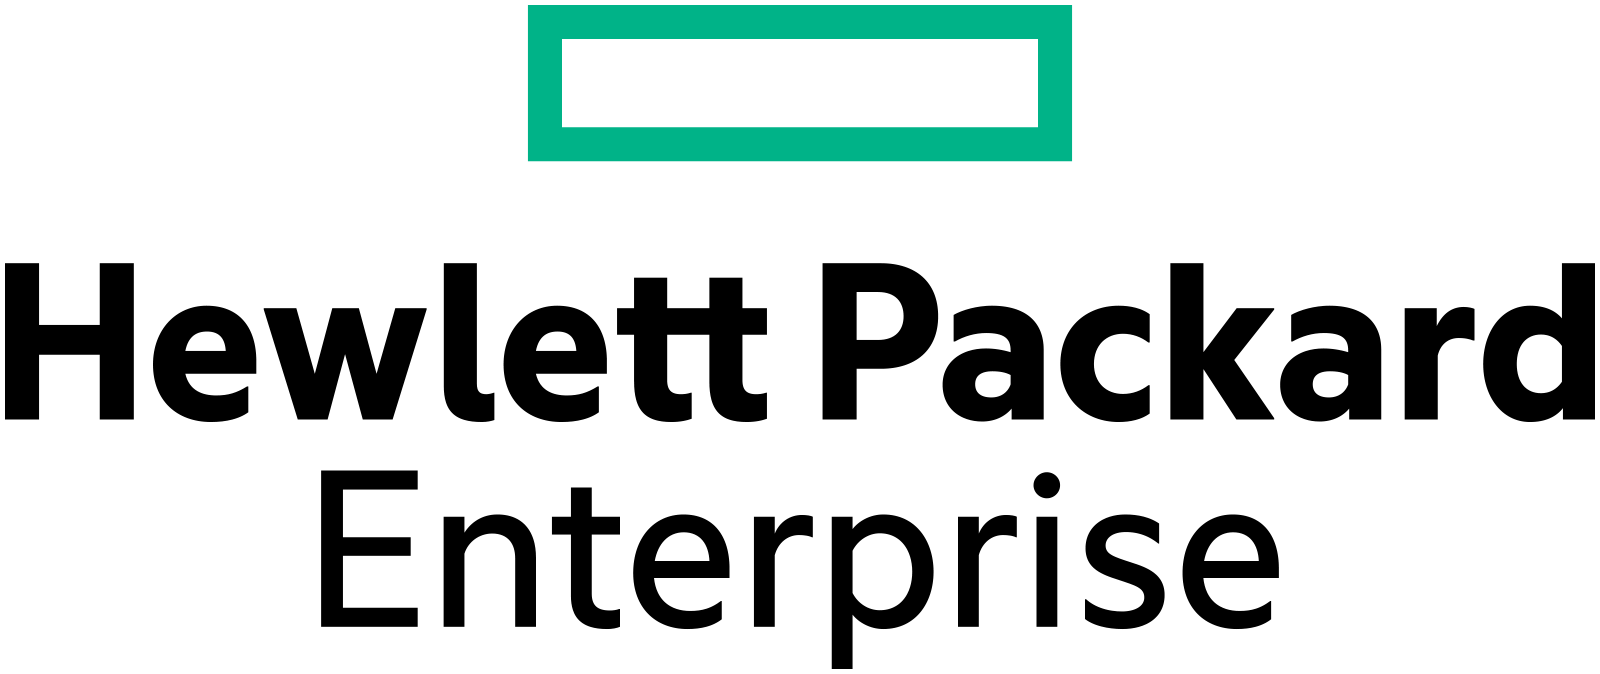 Why Hewlett Packard Enterprise Co Nyse Hpe Stock Is Falling Today